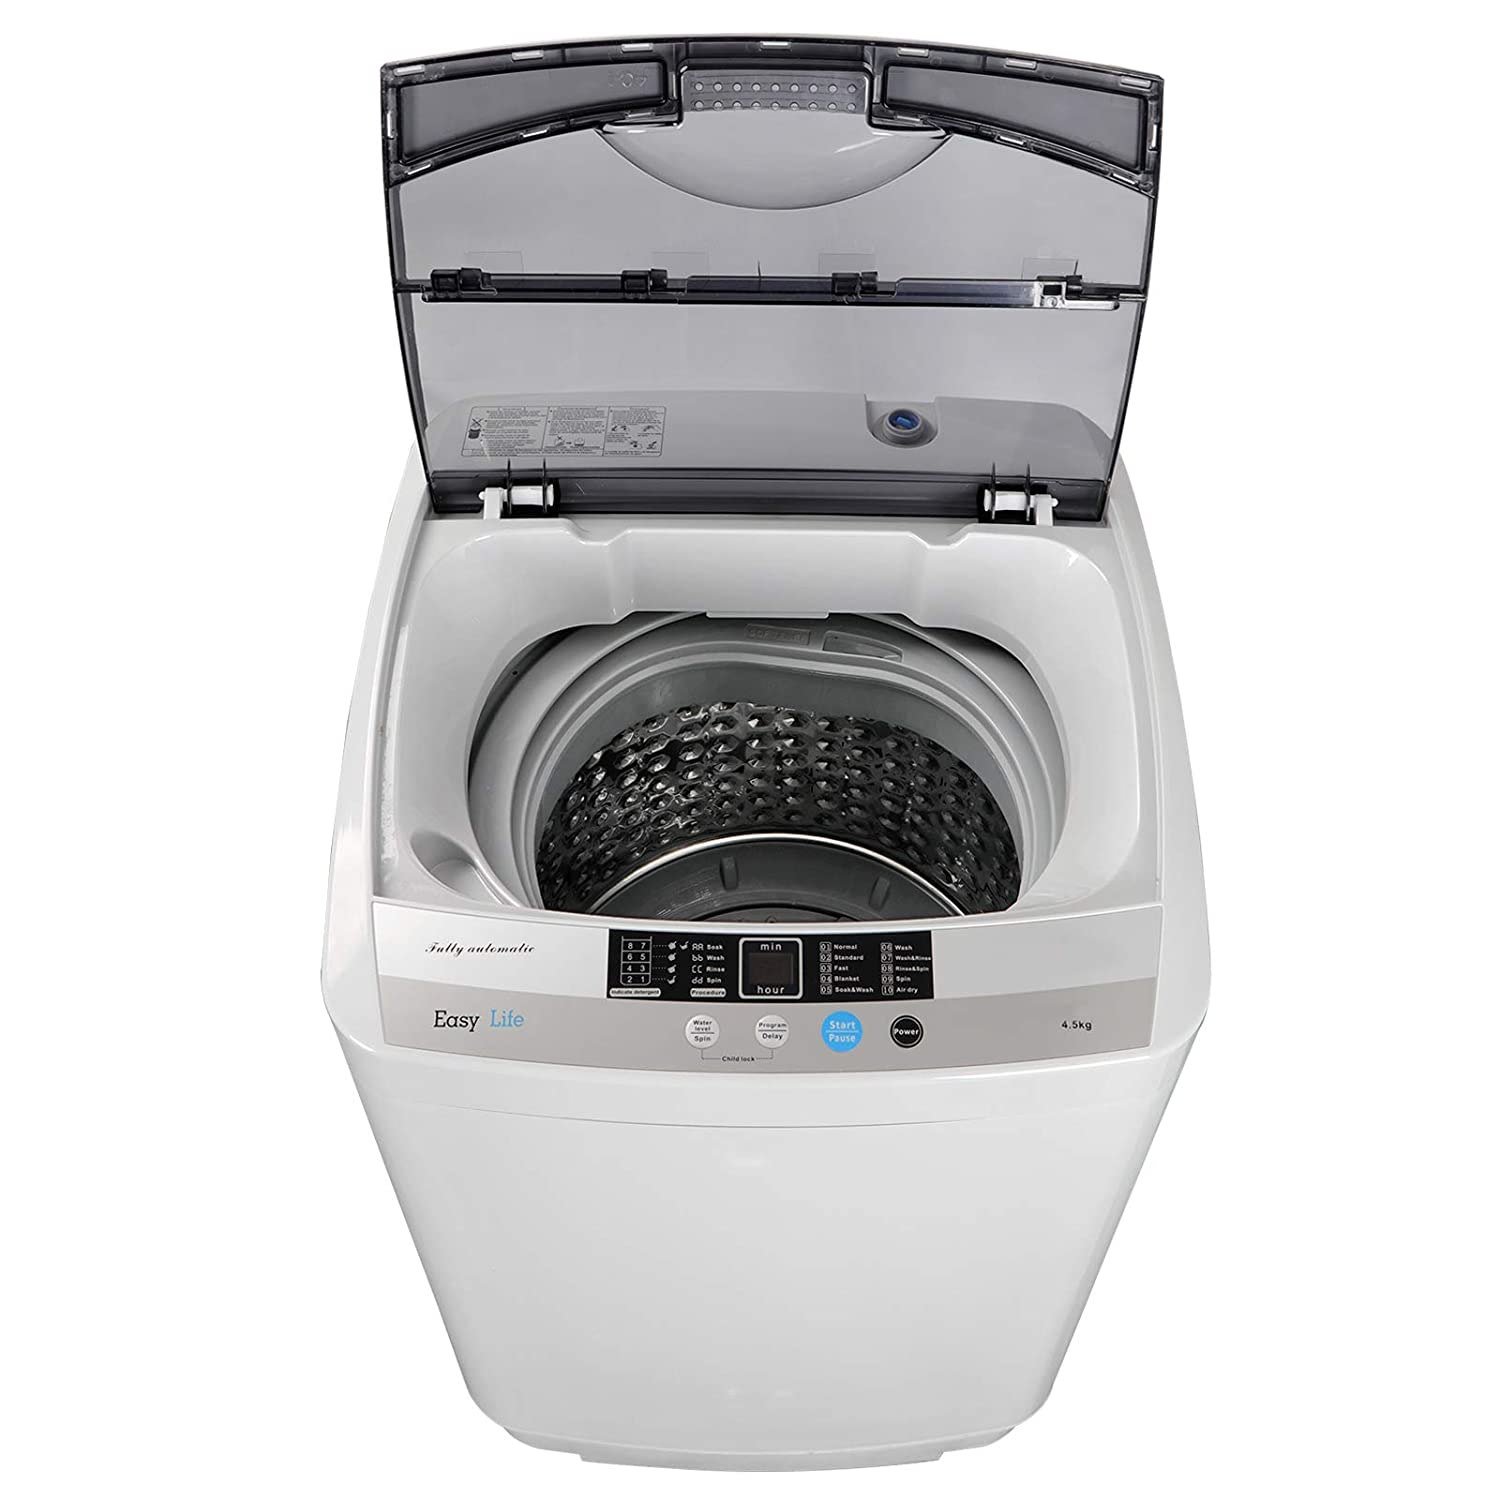 JupiterForce Portable Full-Automatic 1.6 Cu. ft. Washing Machine and Dryer 2in1 Laundry Washer& Spinner